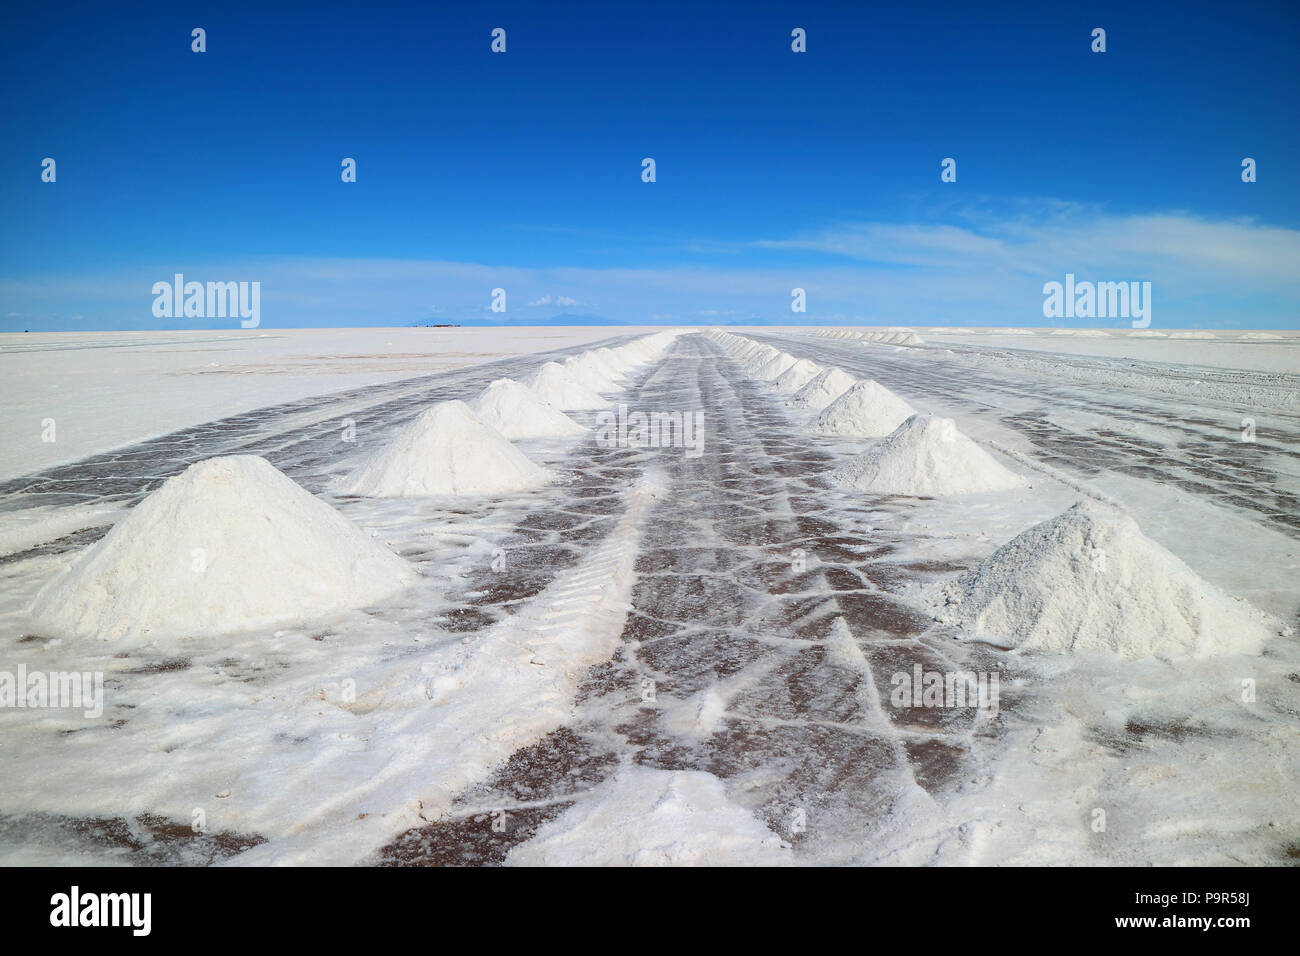 Perspective view of drying salt piles on Uyuni salt flats or Salar de Uyuni in Potosi, Bolivia, South America - Stock Image